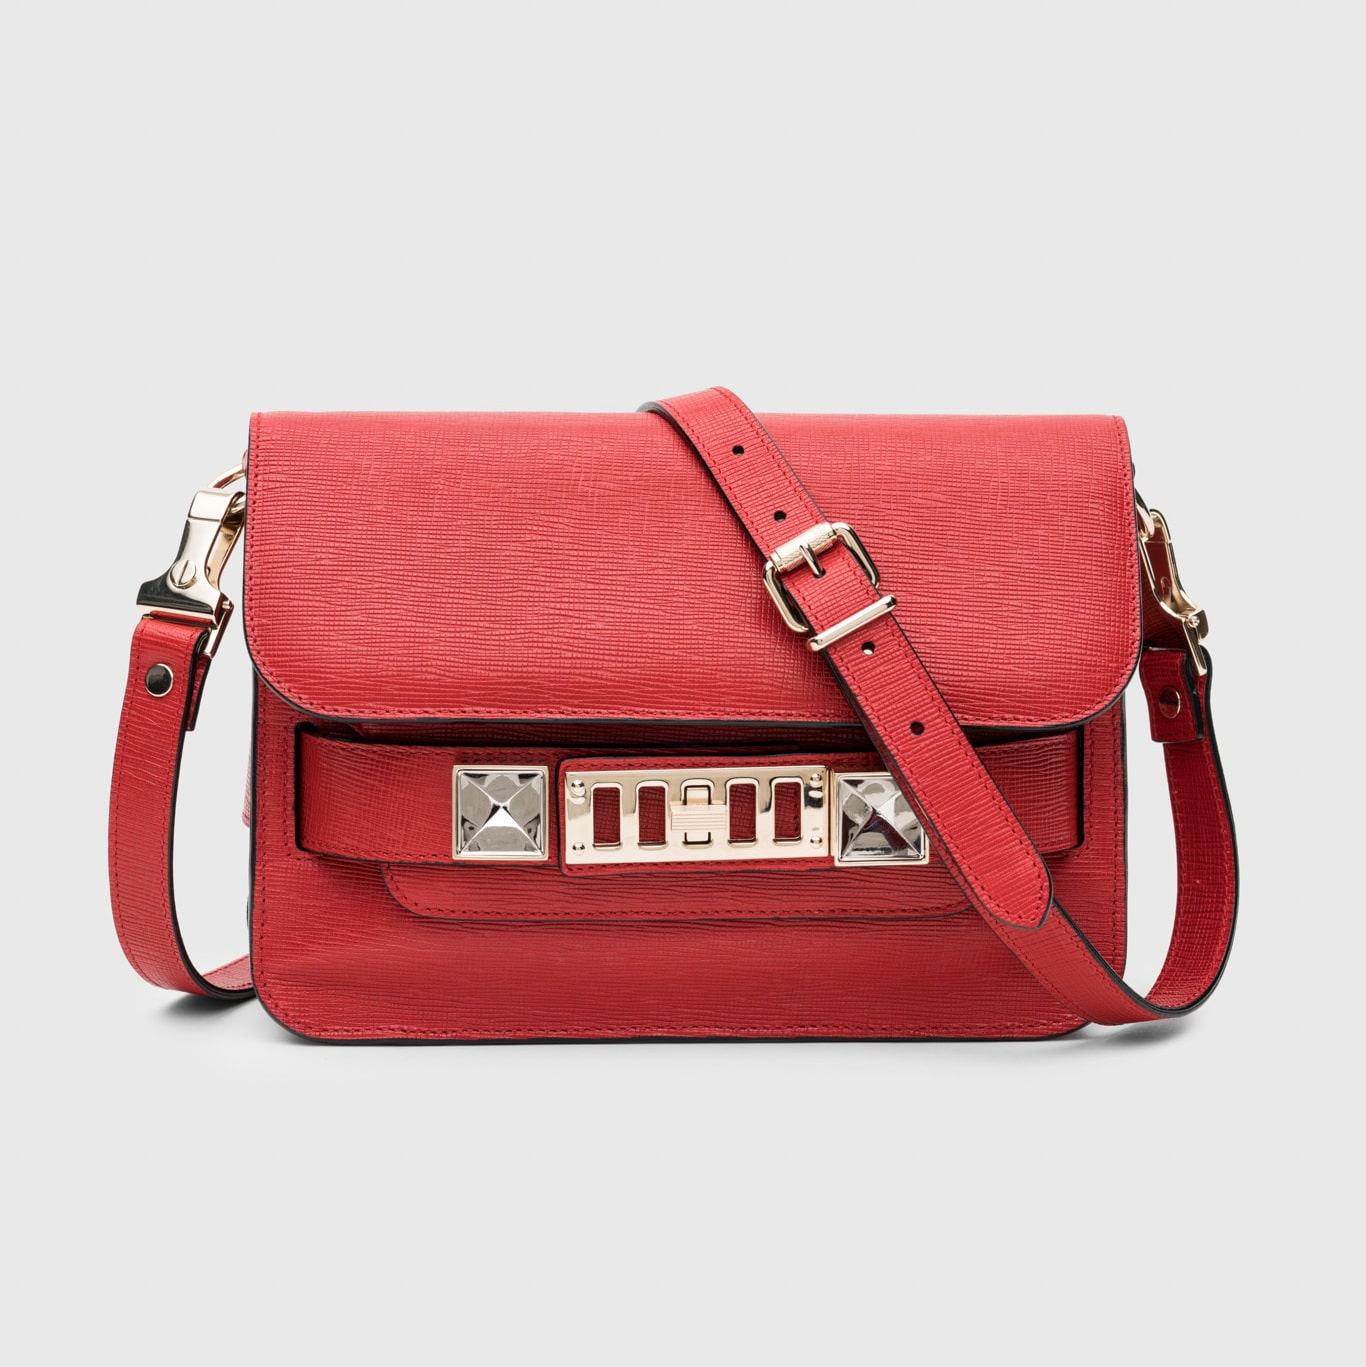 Sac Ps11 Rouge Crossbody Proenza Schouler gwL2Y